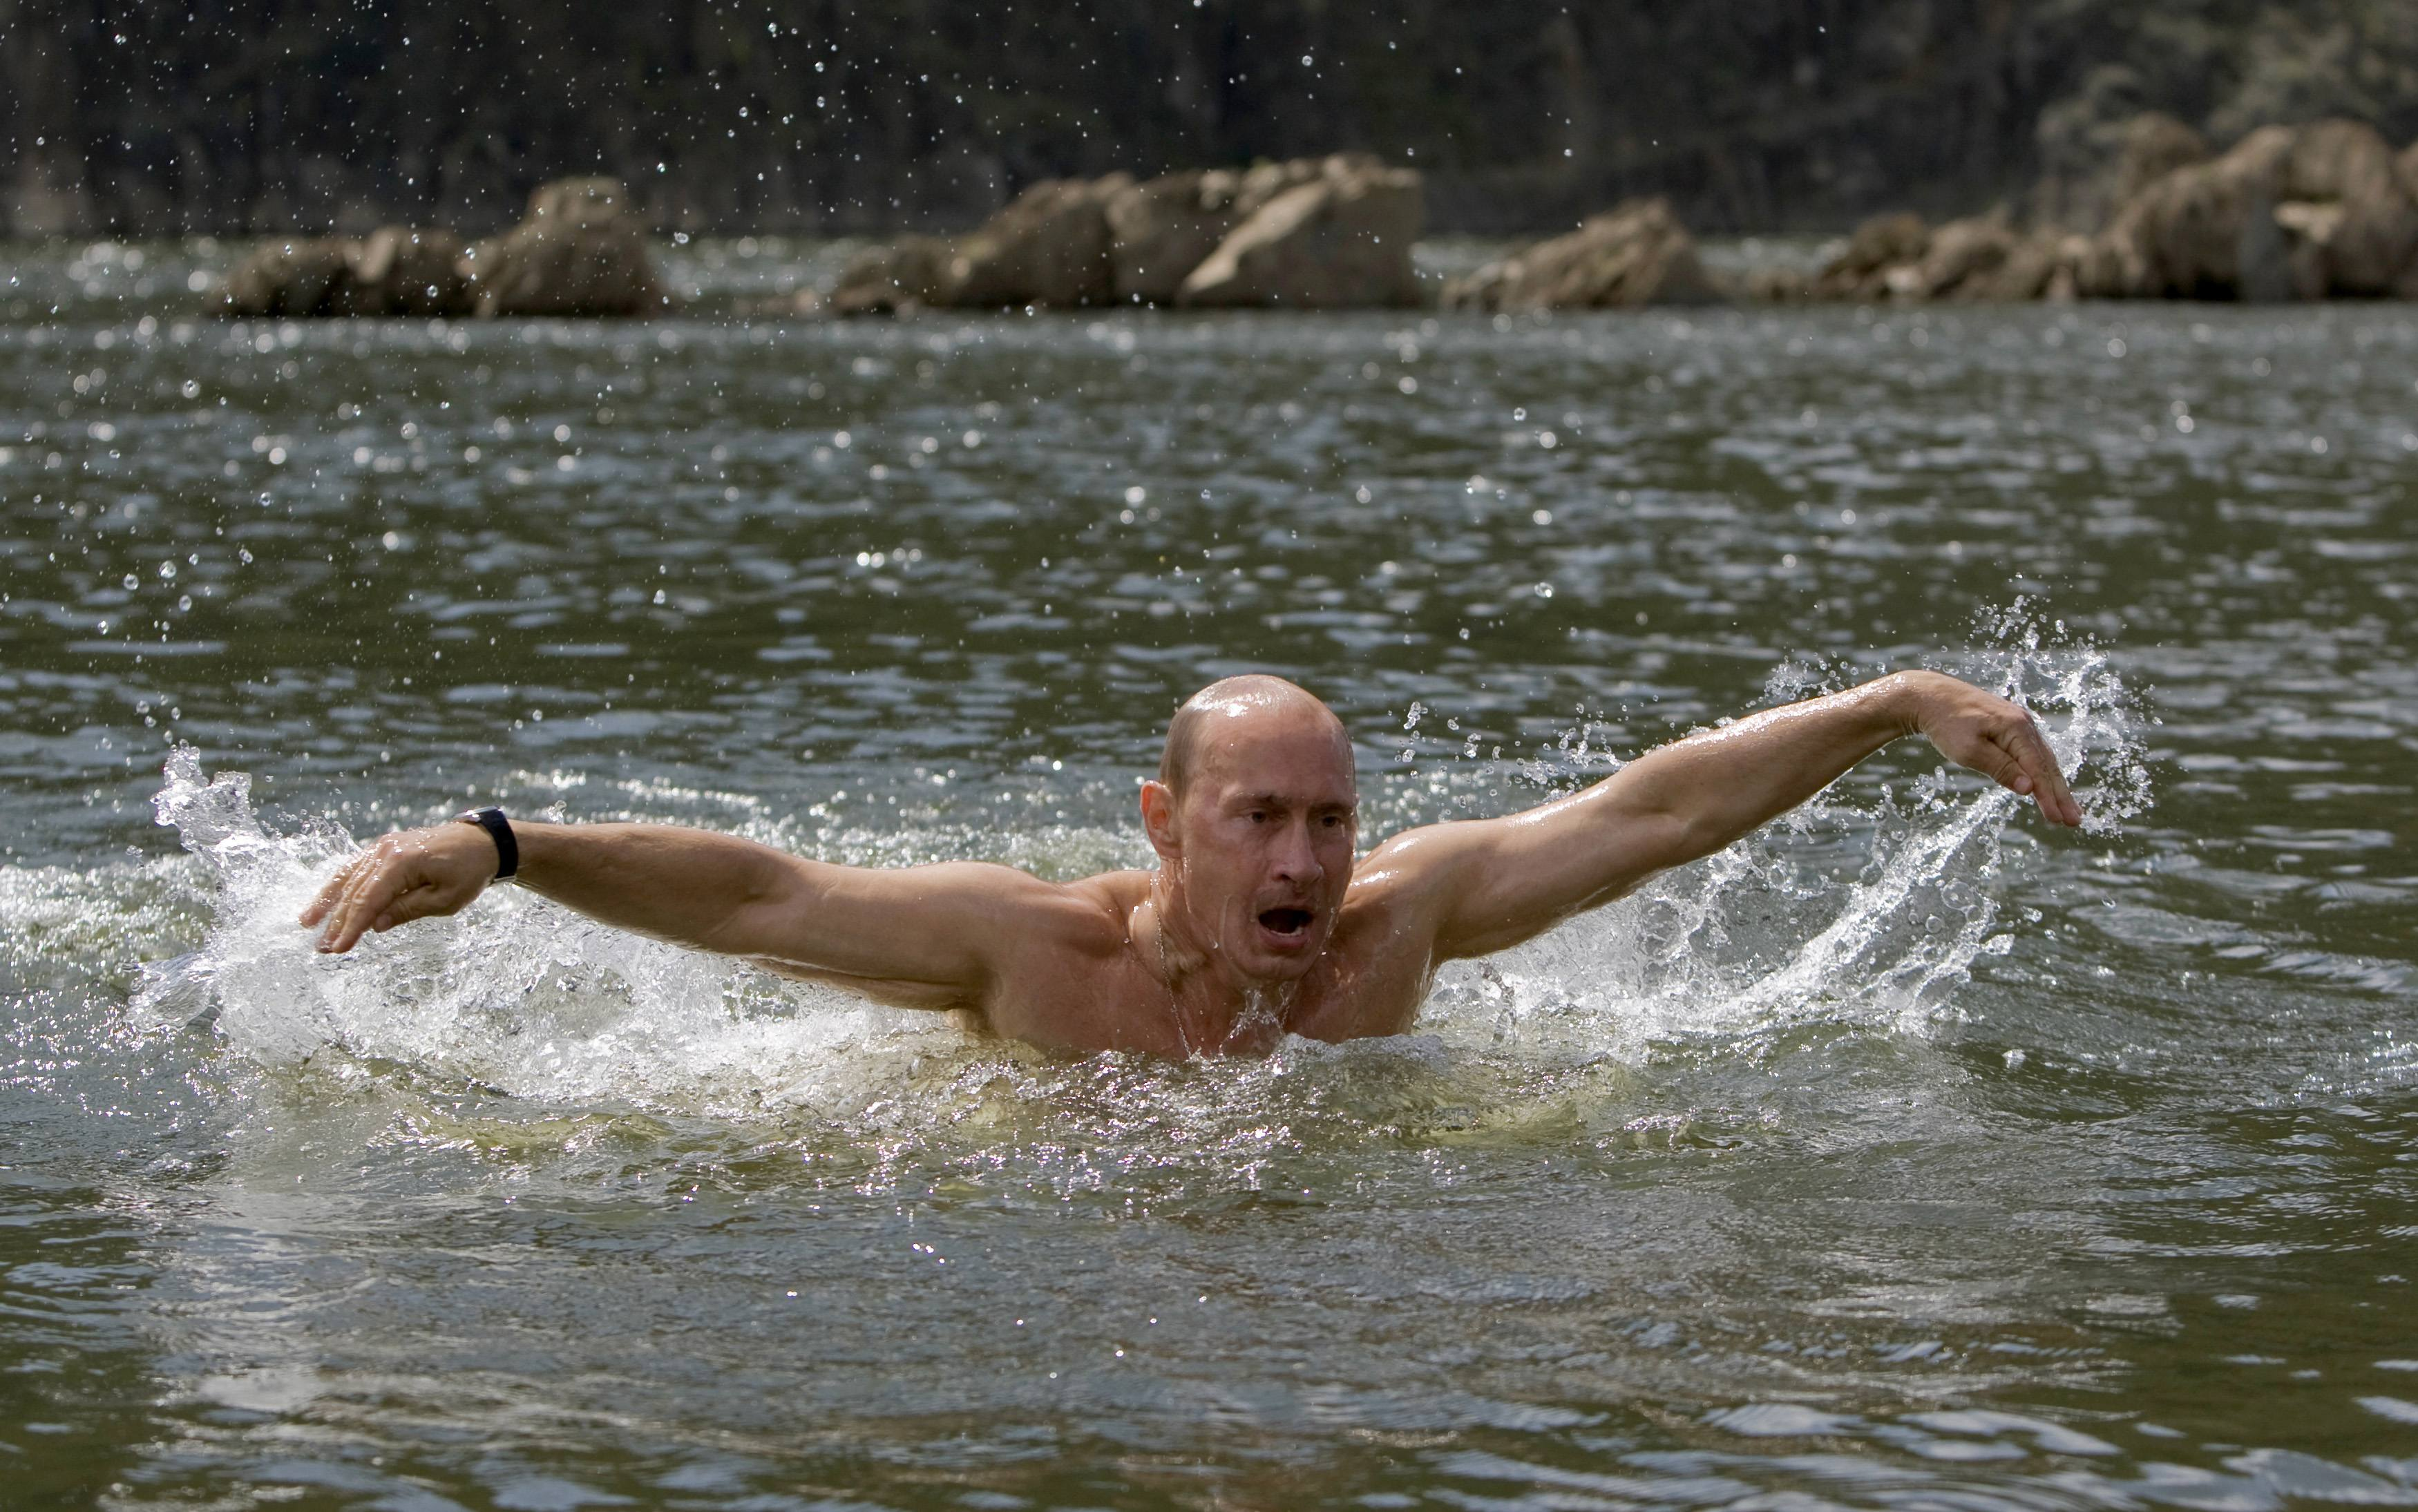 Russia's Prime Minister Vladimir Putin (RUSSIA POLITICS IMAGES OF THE DAY)